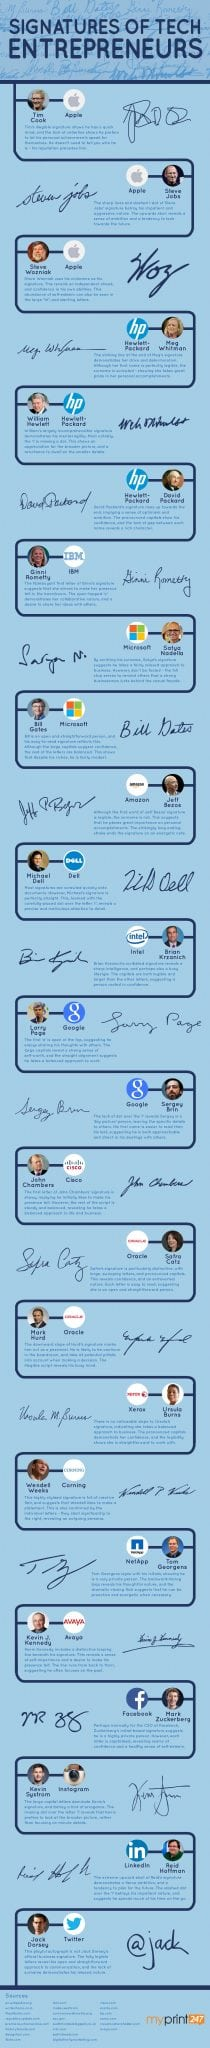 Photo of What the Signatures of 25 Top Tech Entrepreneurs Say About Their Personalities [INFOGRAPHIC]